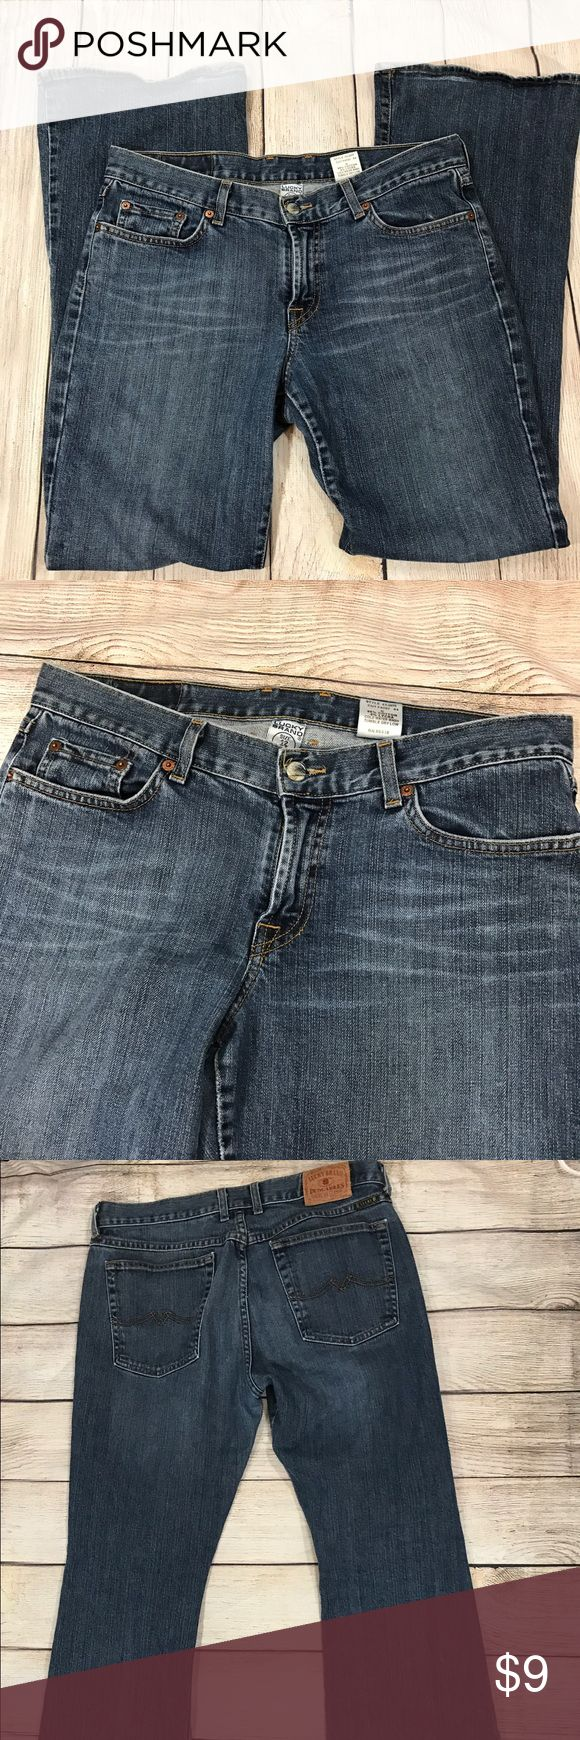 Lucky brand jeans Women's dungarees Sz 12 bootcut Lucky brand jeans Women's dungarees  Style: lq81070  Size 12  Inseam: 31 inches  Waist: 32 inches  Length: 41 inches  Slightly distressed on hems. Otherwise no stains or holes Lucky Brand Jeans Boot Cut